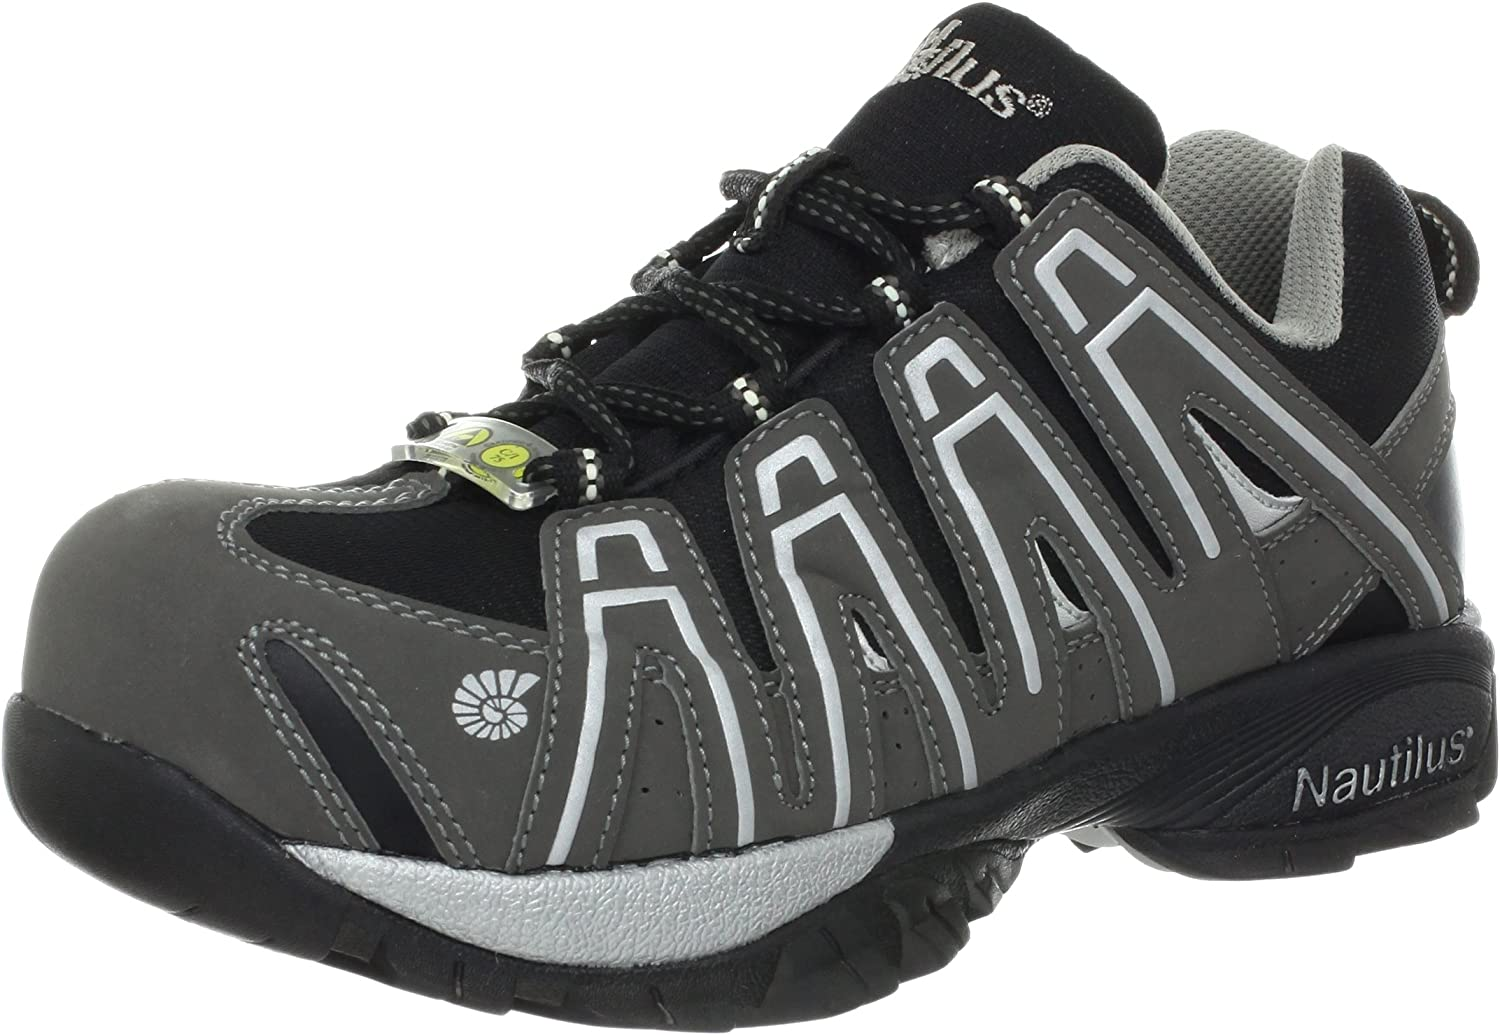 Nautilus 1340 ESD Comp Safety Toe No Exposed Metal Athletic Work Shoe B00GXCUE64  | Fierce Kaufen